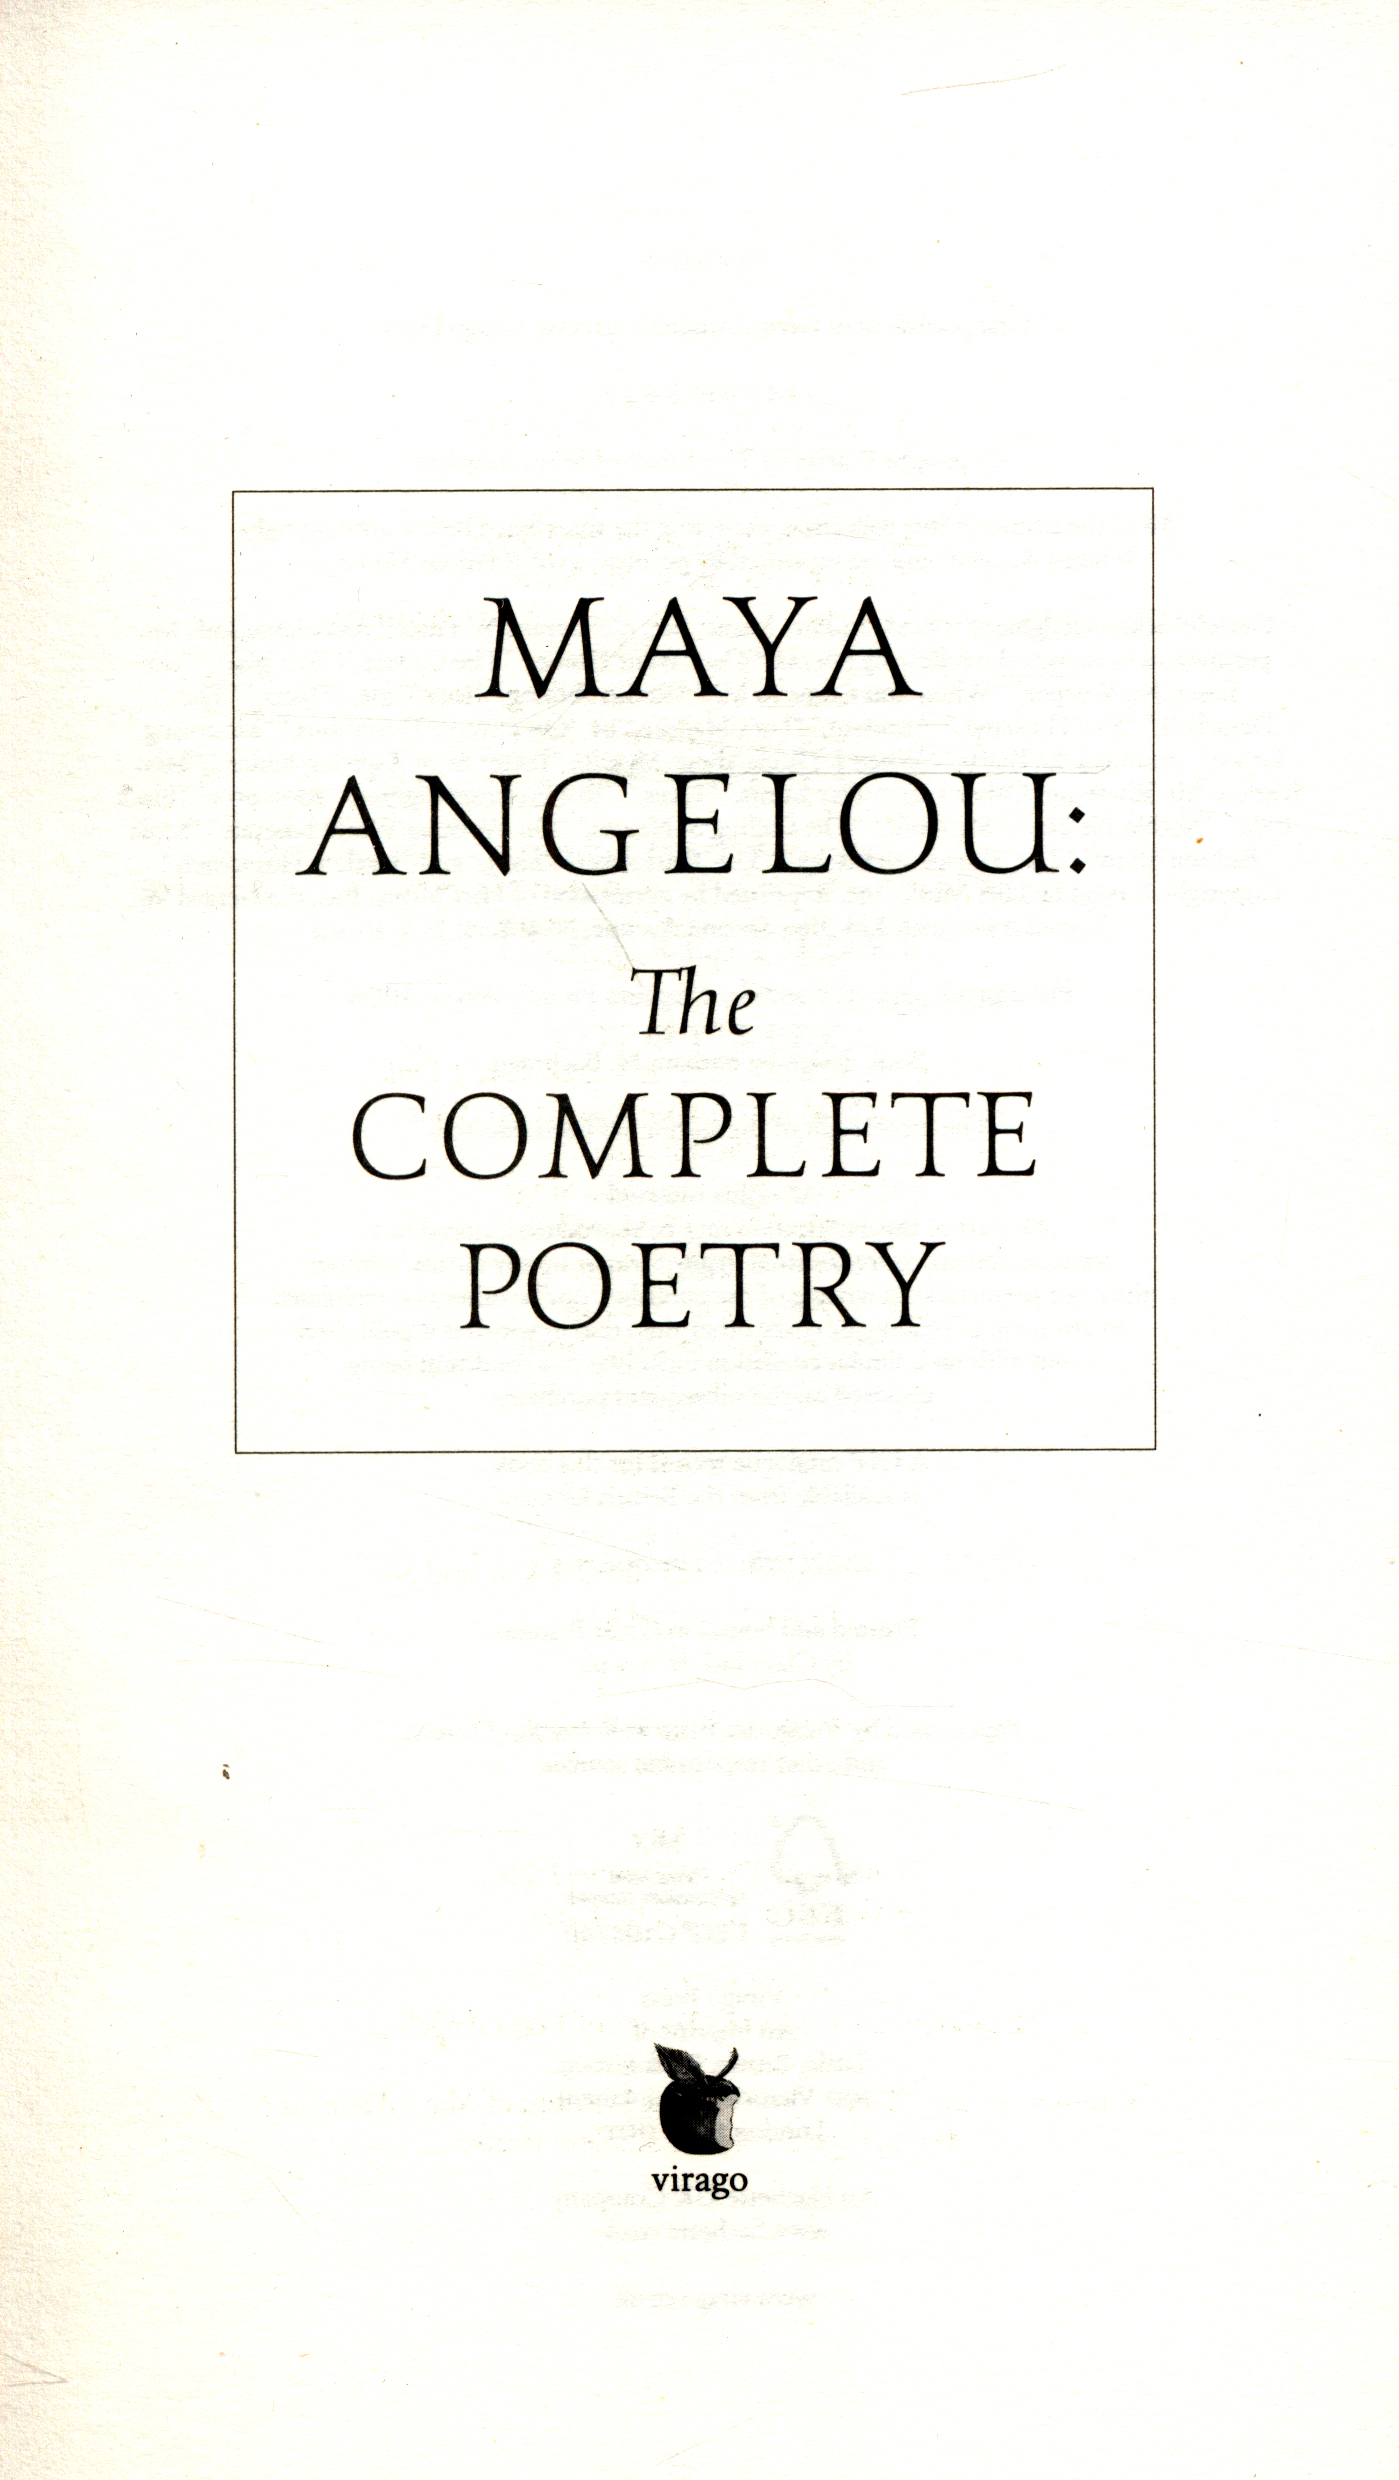 poetry analysis poor girl by maya angelou Maya angelou (11px/ˈmaɪə ˈændʒəloʊ/ (born april 4, 1928) is an american poet and prose author angelou has been called america's most visible black female autobiographer (by scholar joanne m braxton) she is best known for her series of 6 autobiographical volumes, which focus on her.